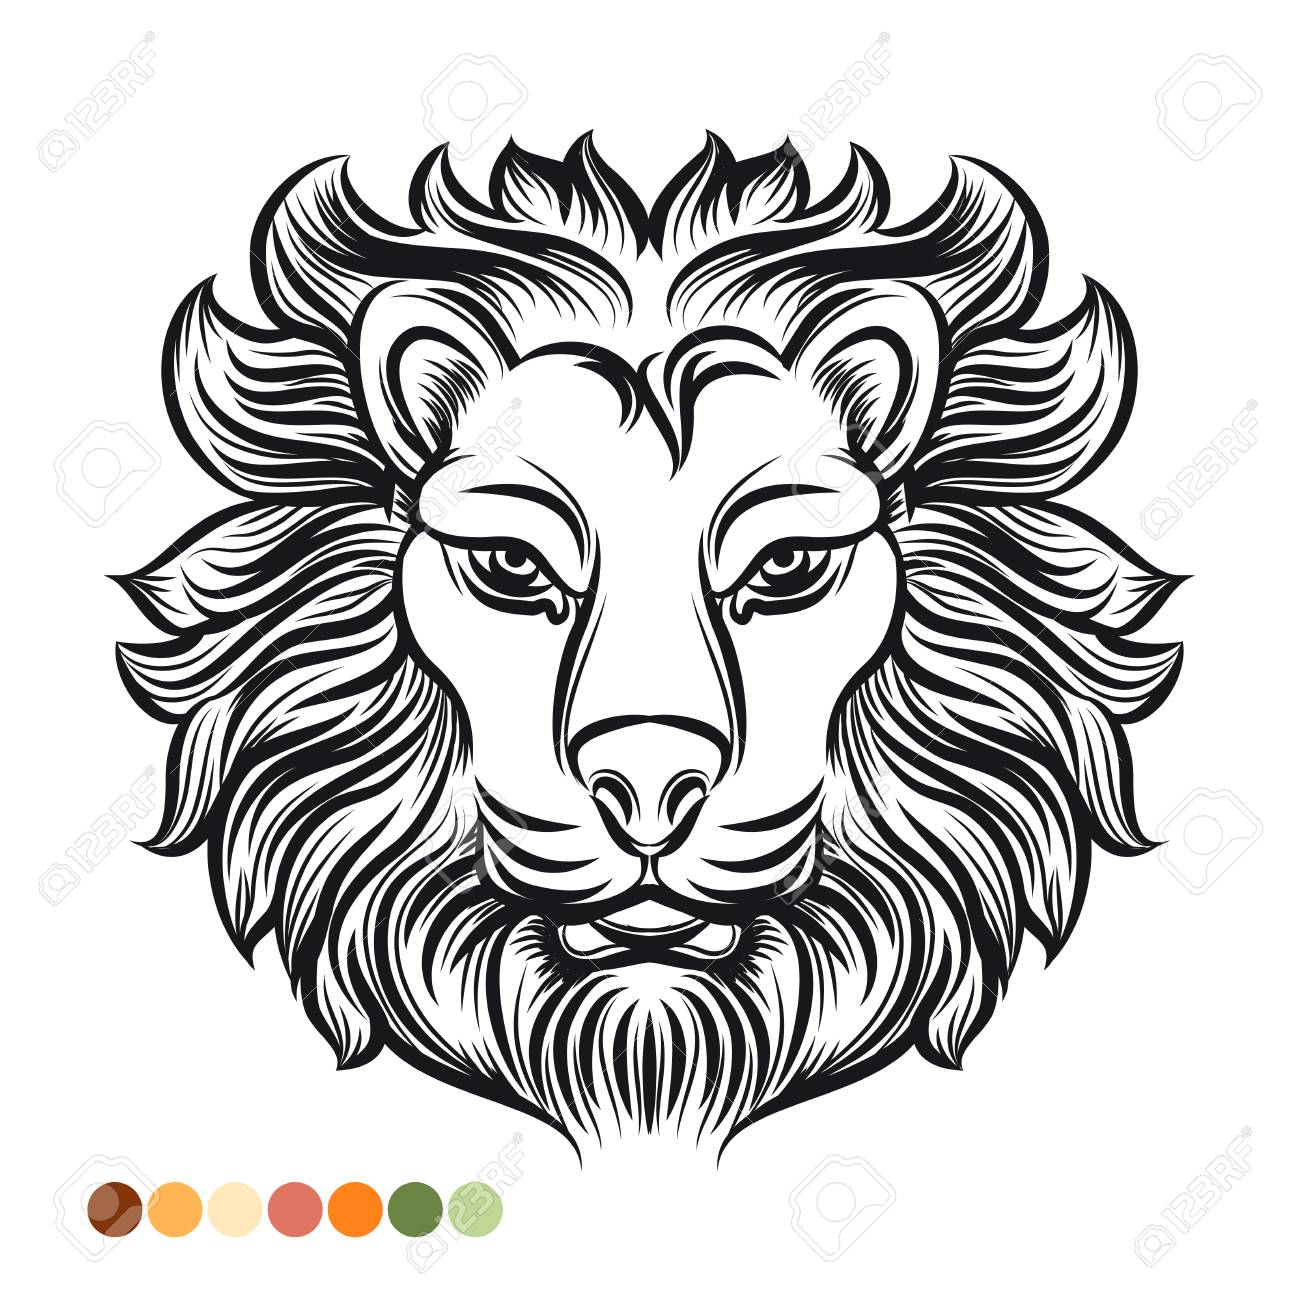 Wild Lion Coloring Page With Colors Samples Stock Photo, Picture And ...